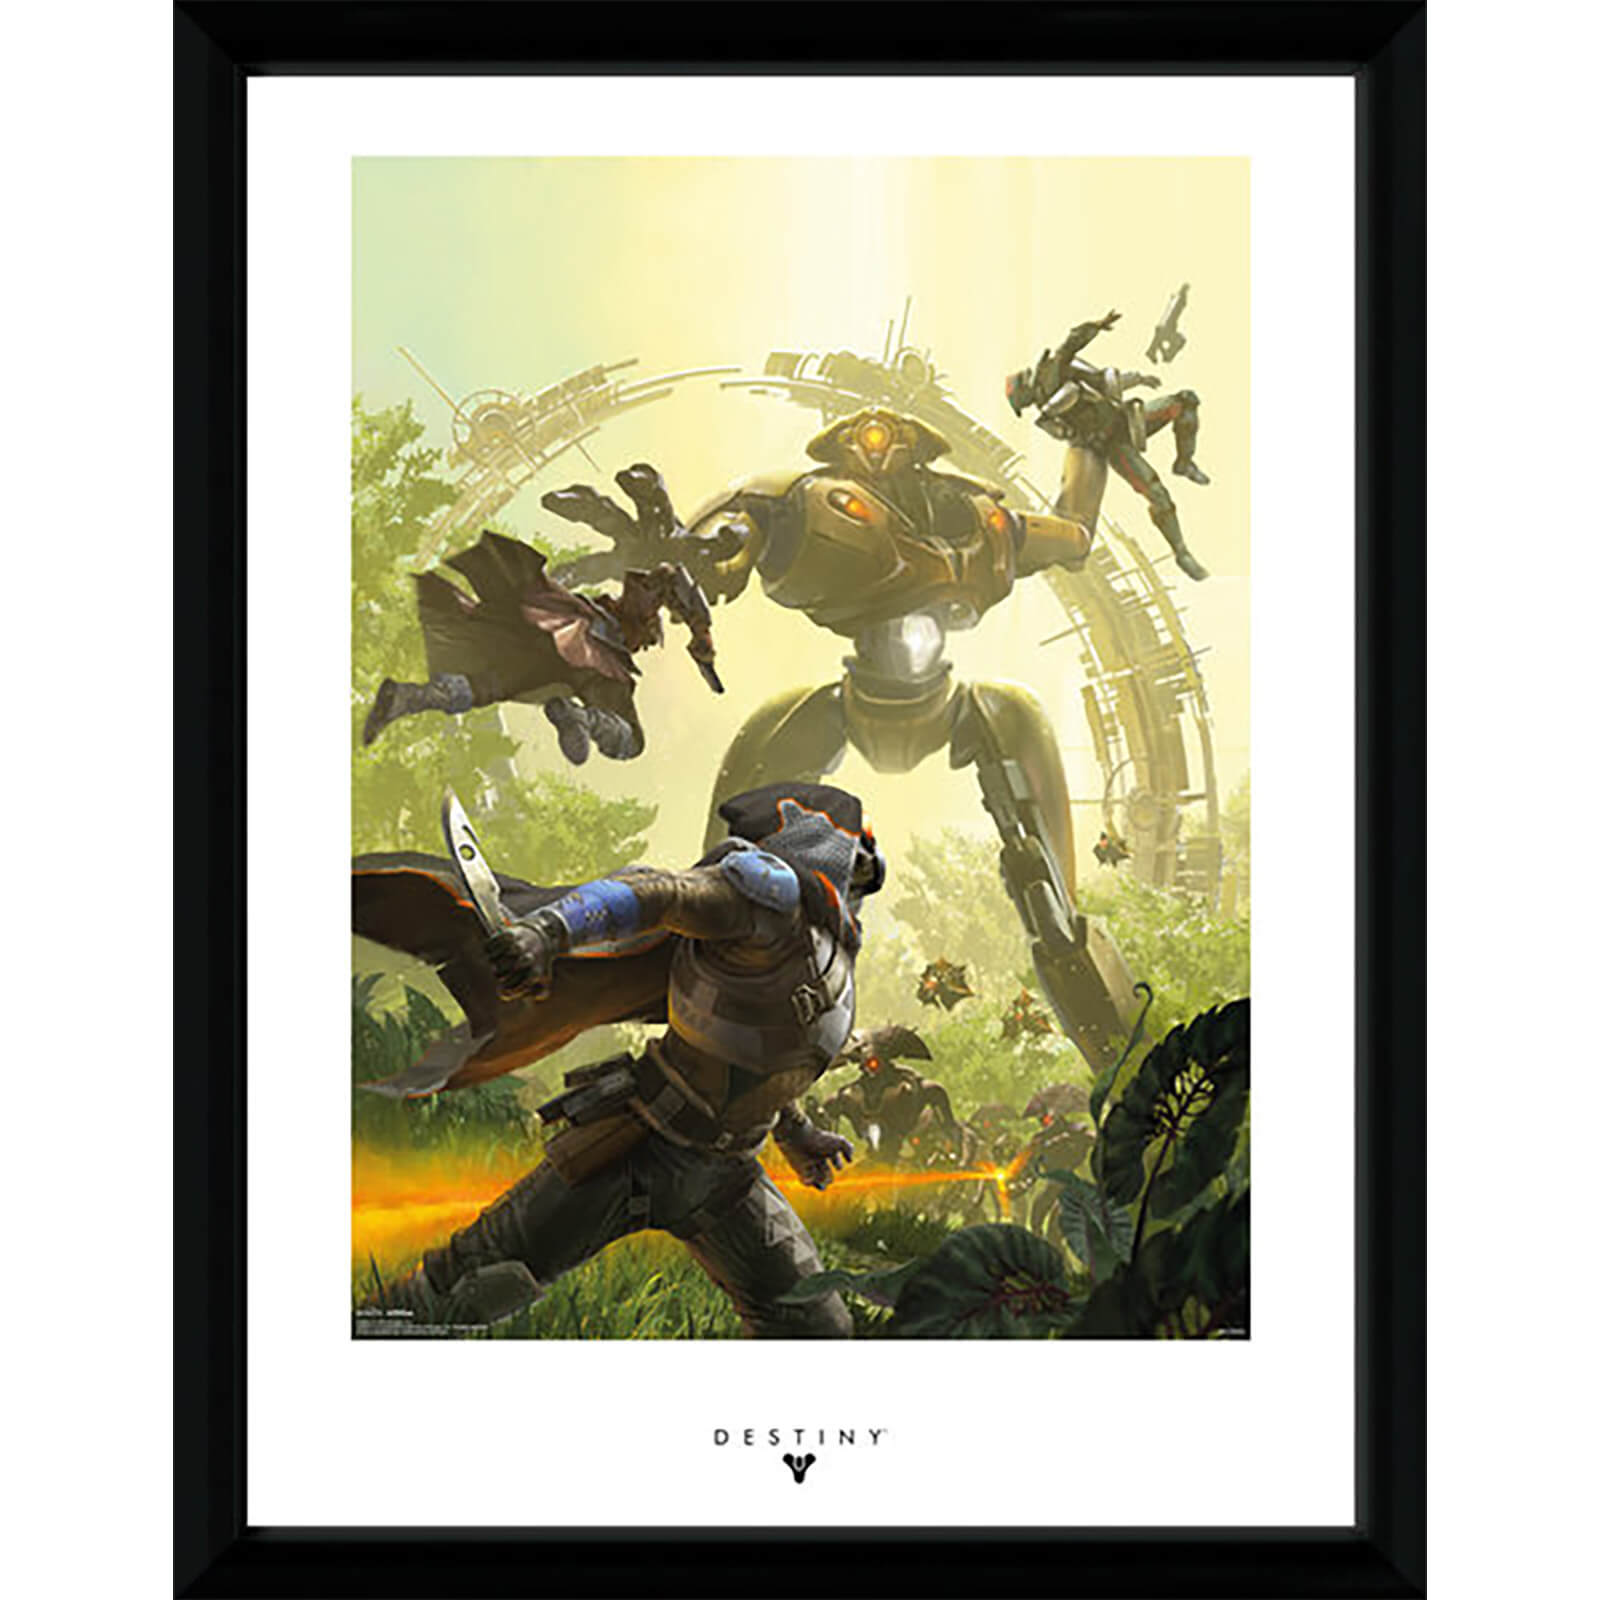 Destiny Vex - 16 x 12 Inches Framed Photograph